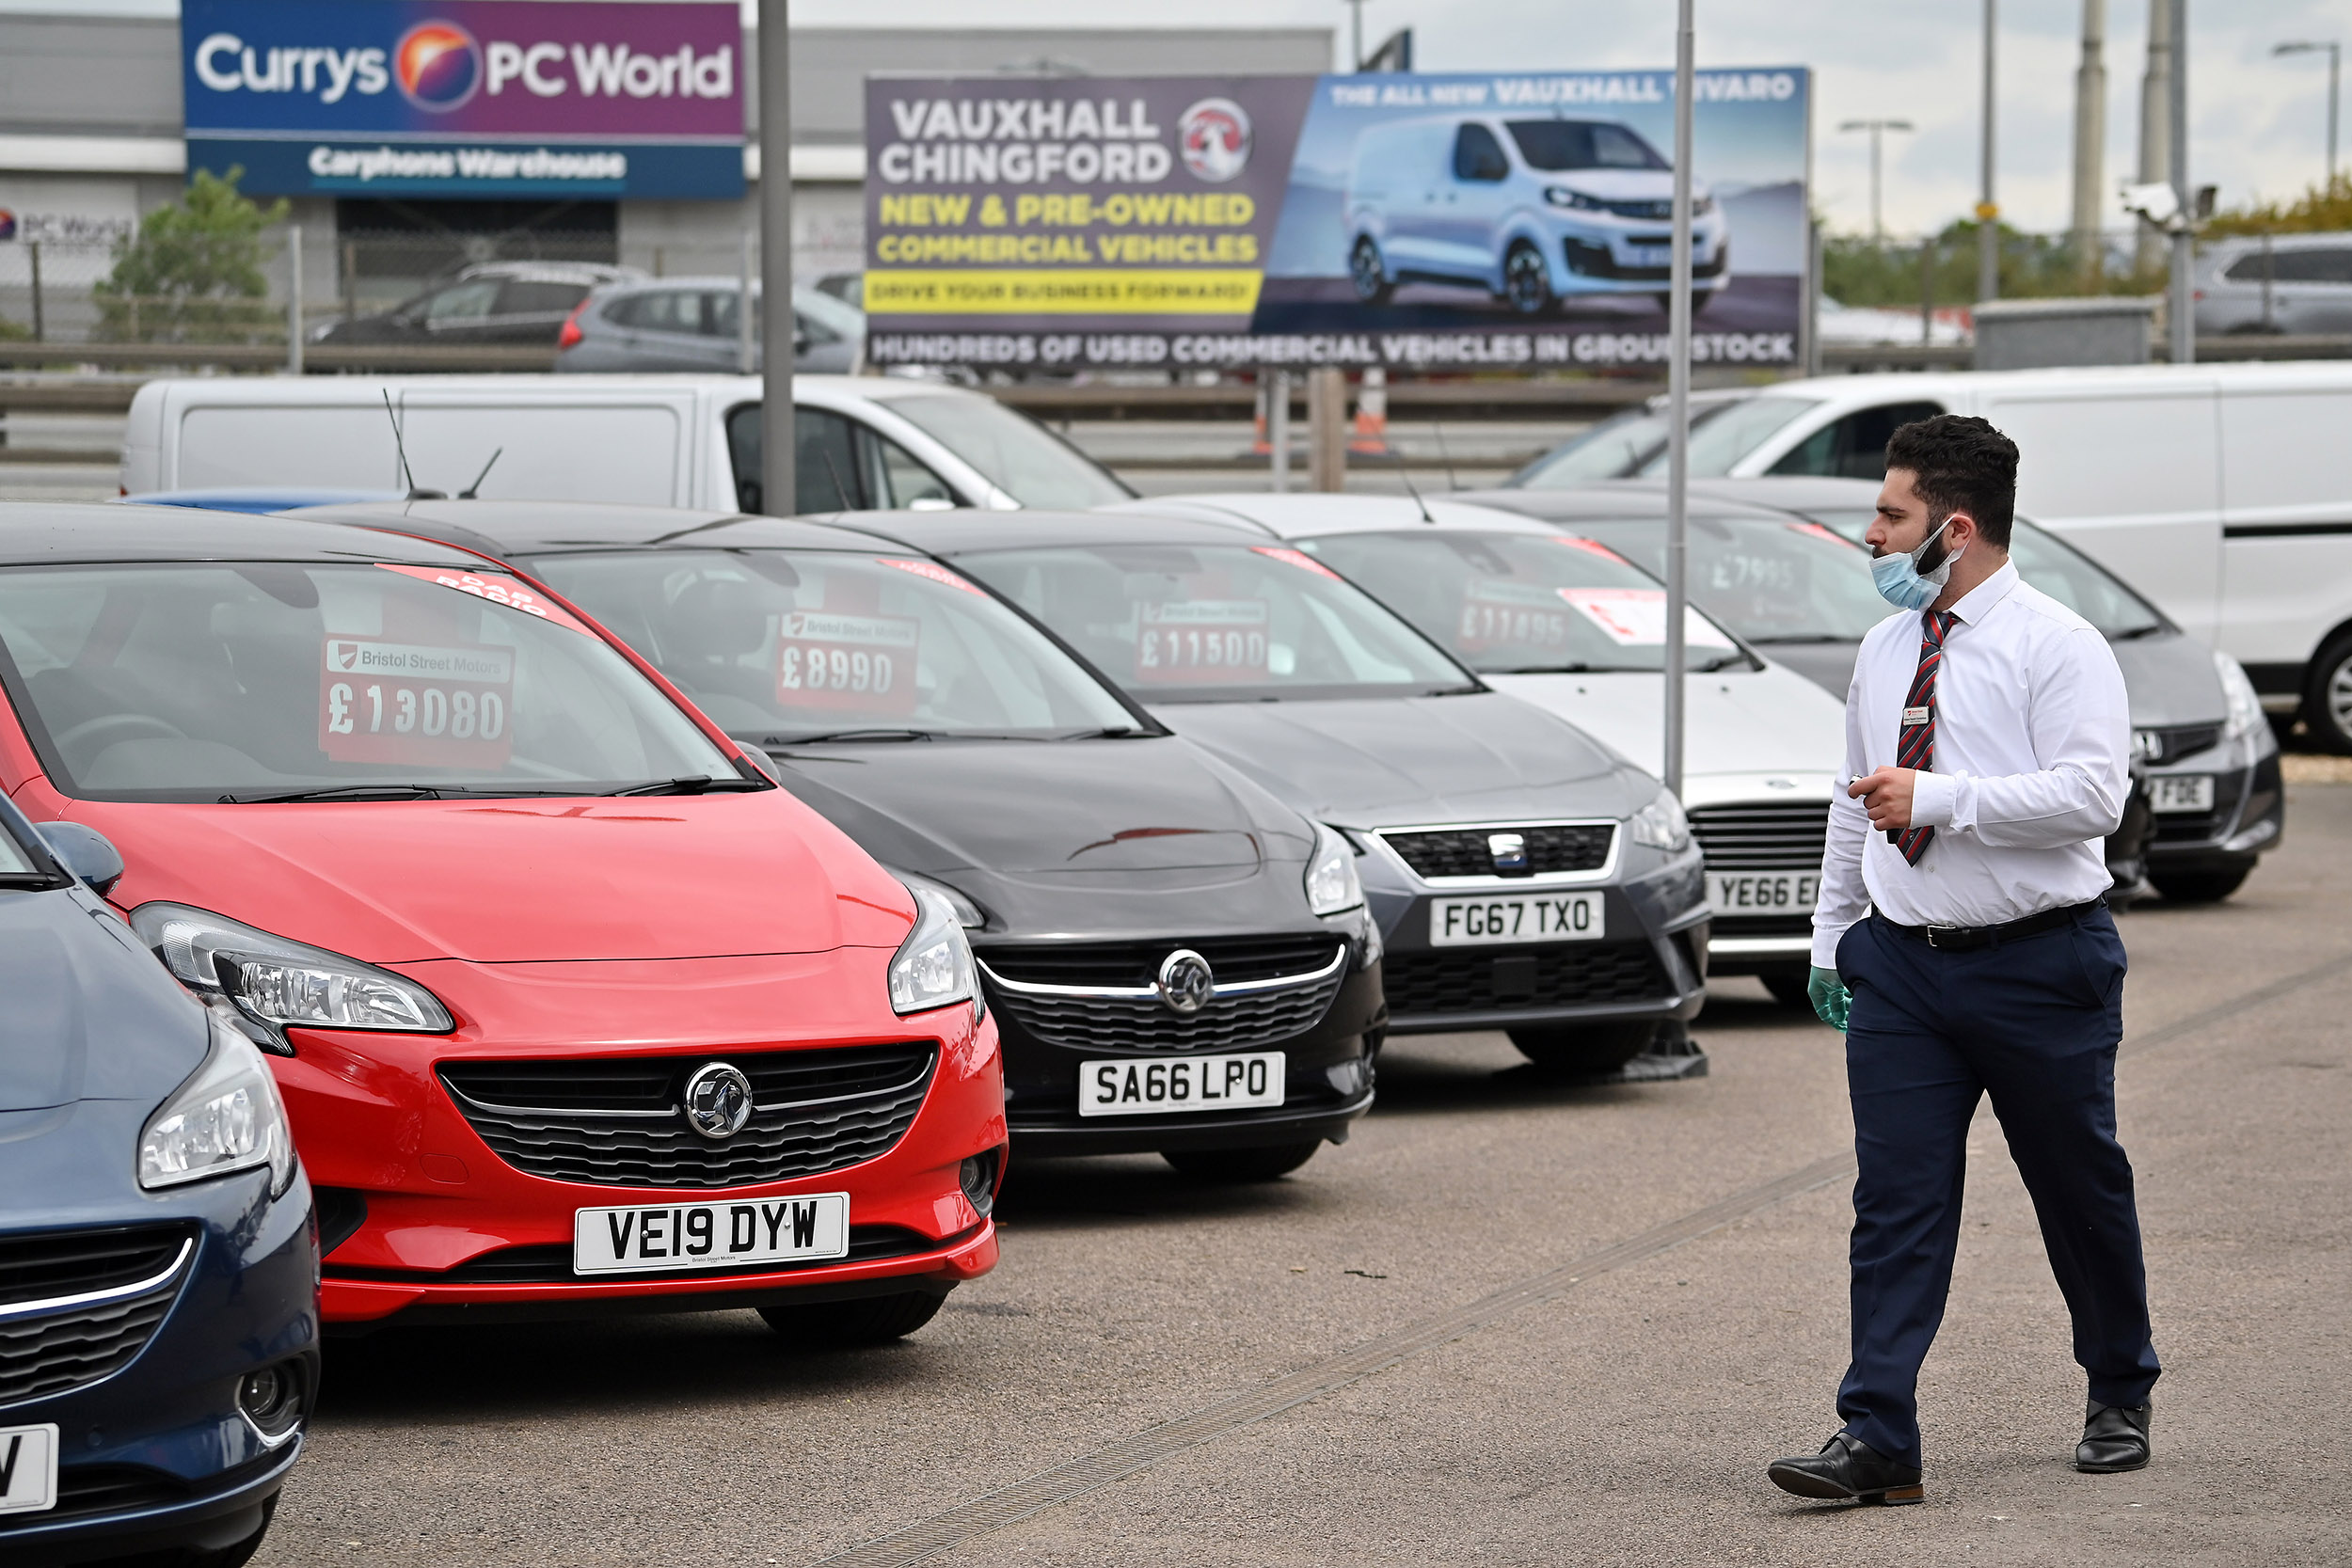 A car salesperson wearing PPE (personal protective equipment) walks past vehicles parked at the Vauxhall car dealership on June 4, in London, England.